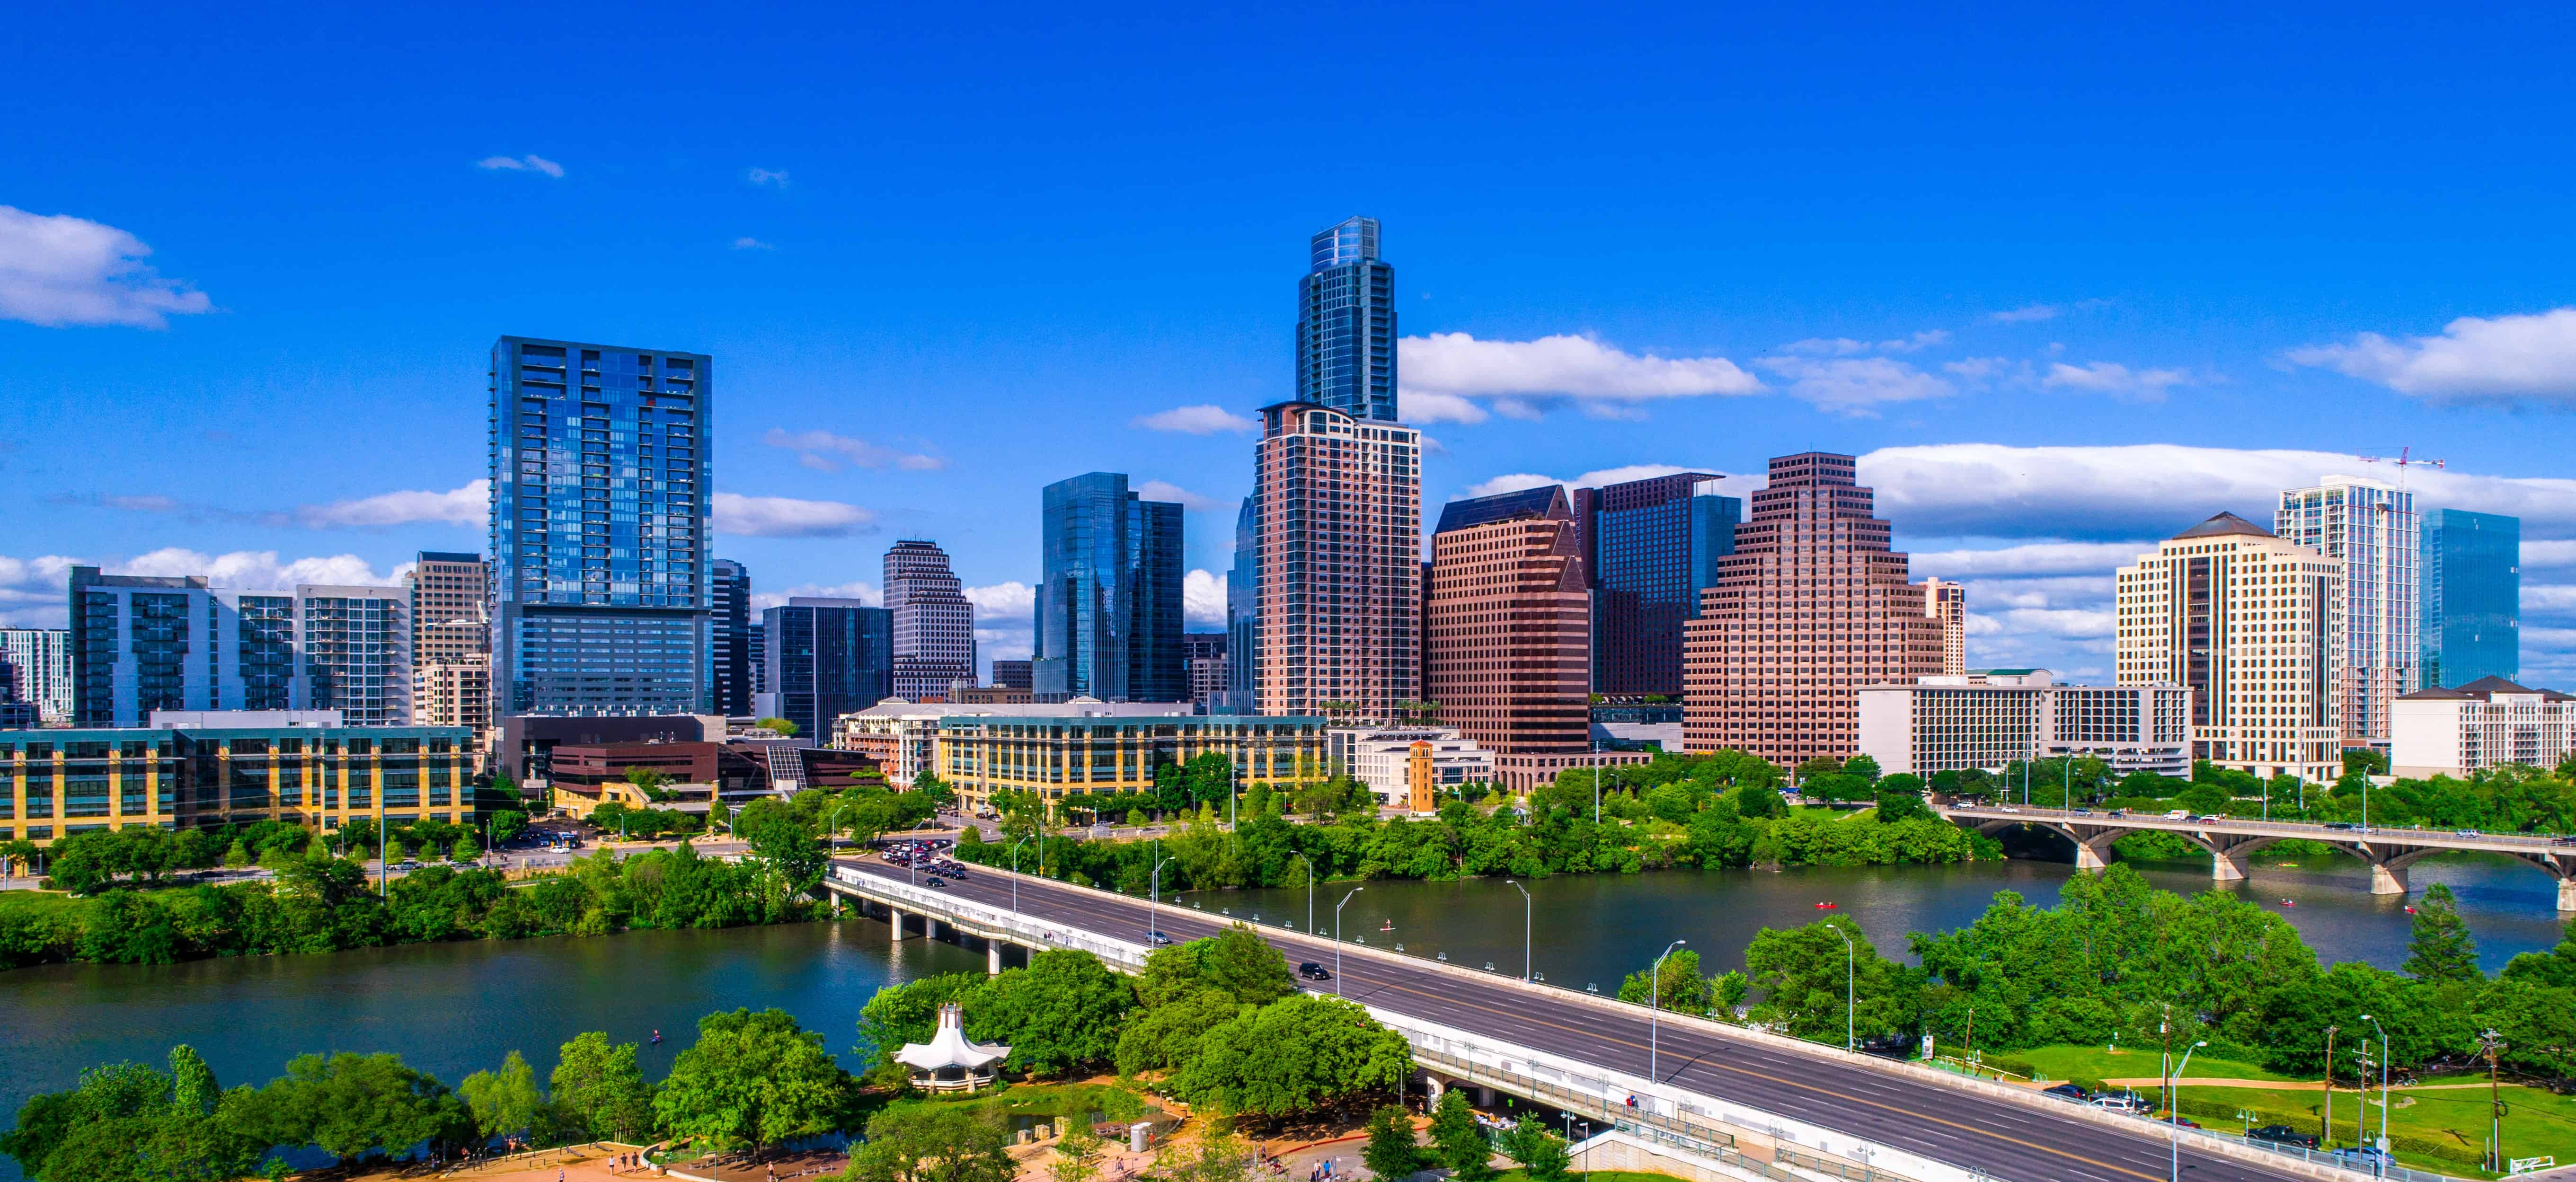 Image of Austin Skyline with text